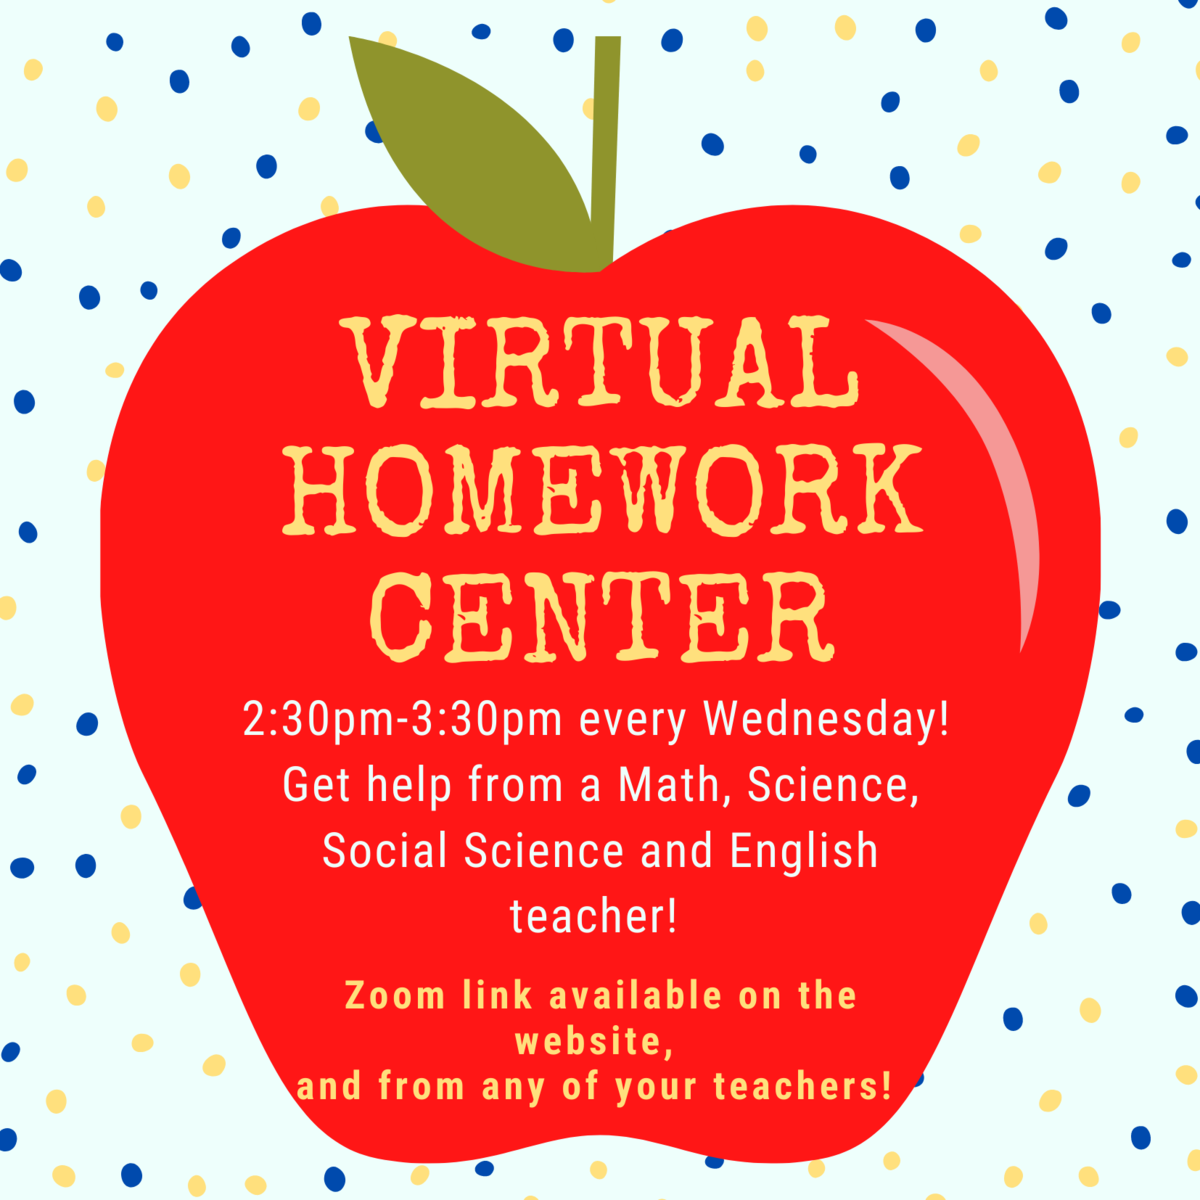 Virtual Homework Center